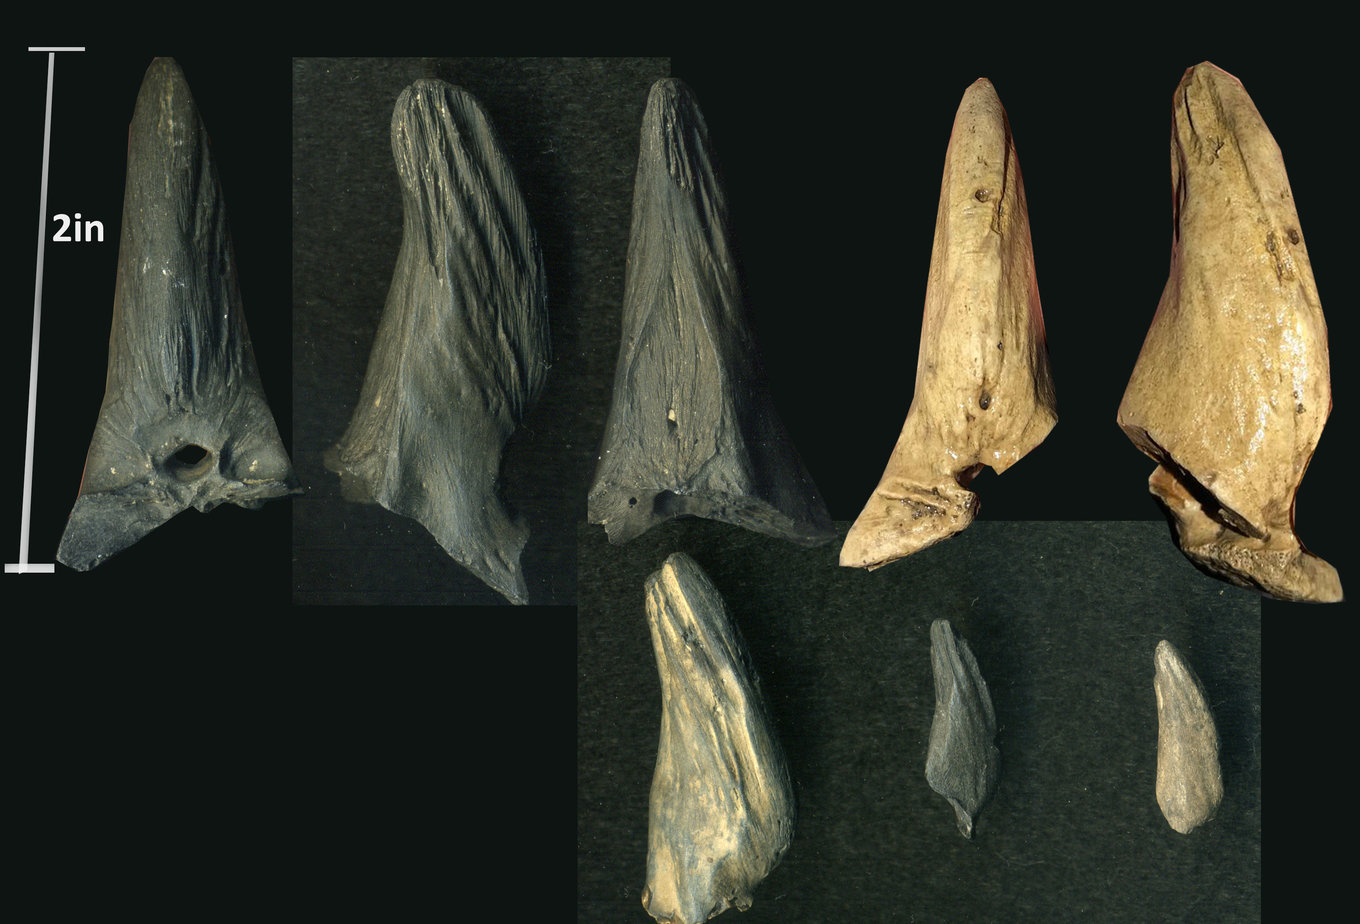 Billfish_Aglyptorhynchus_Oligocene_ChandlerBridge_SC_02.thumb.jpg.ab5c519618951adb1a3add16940229cd.jpg